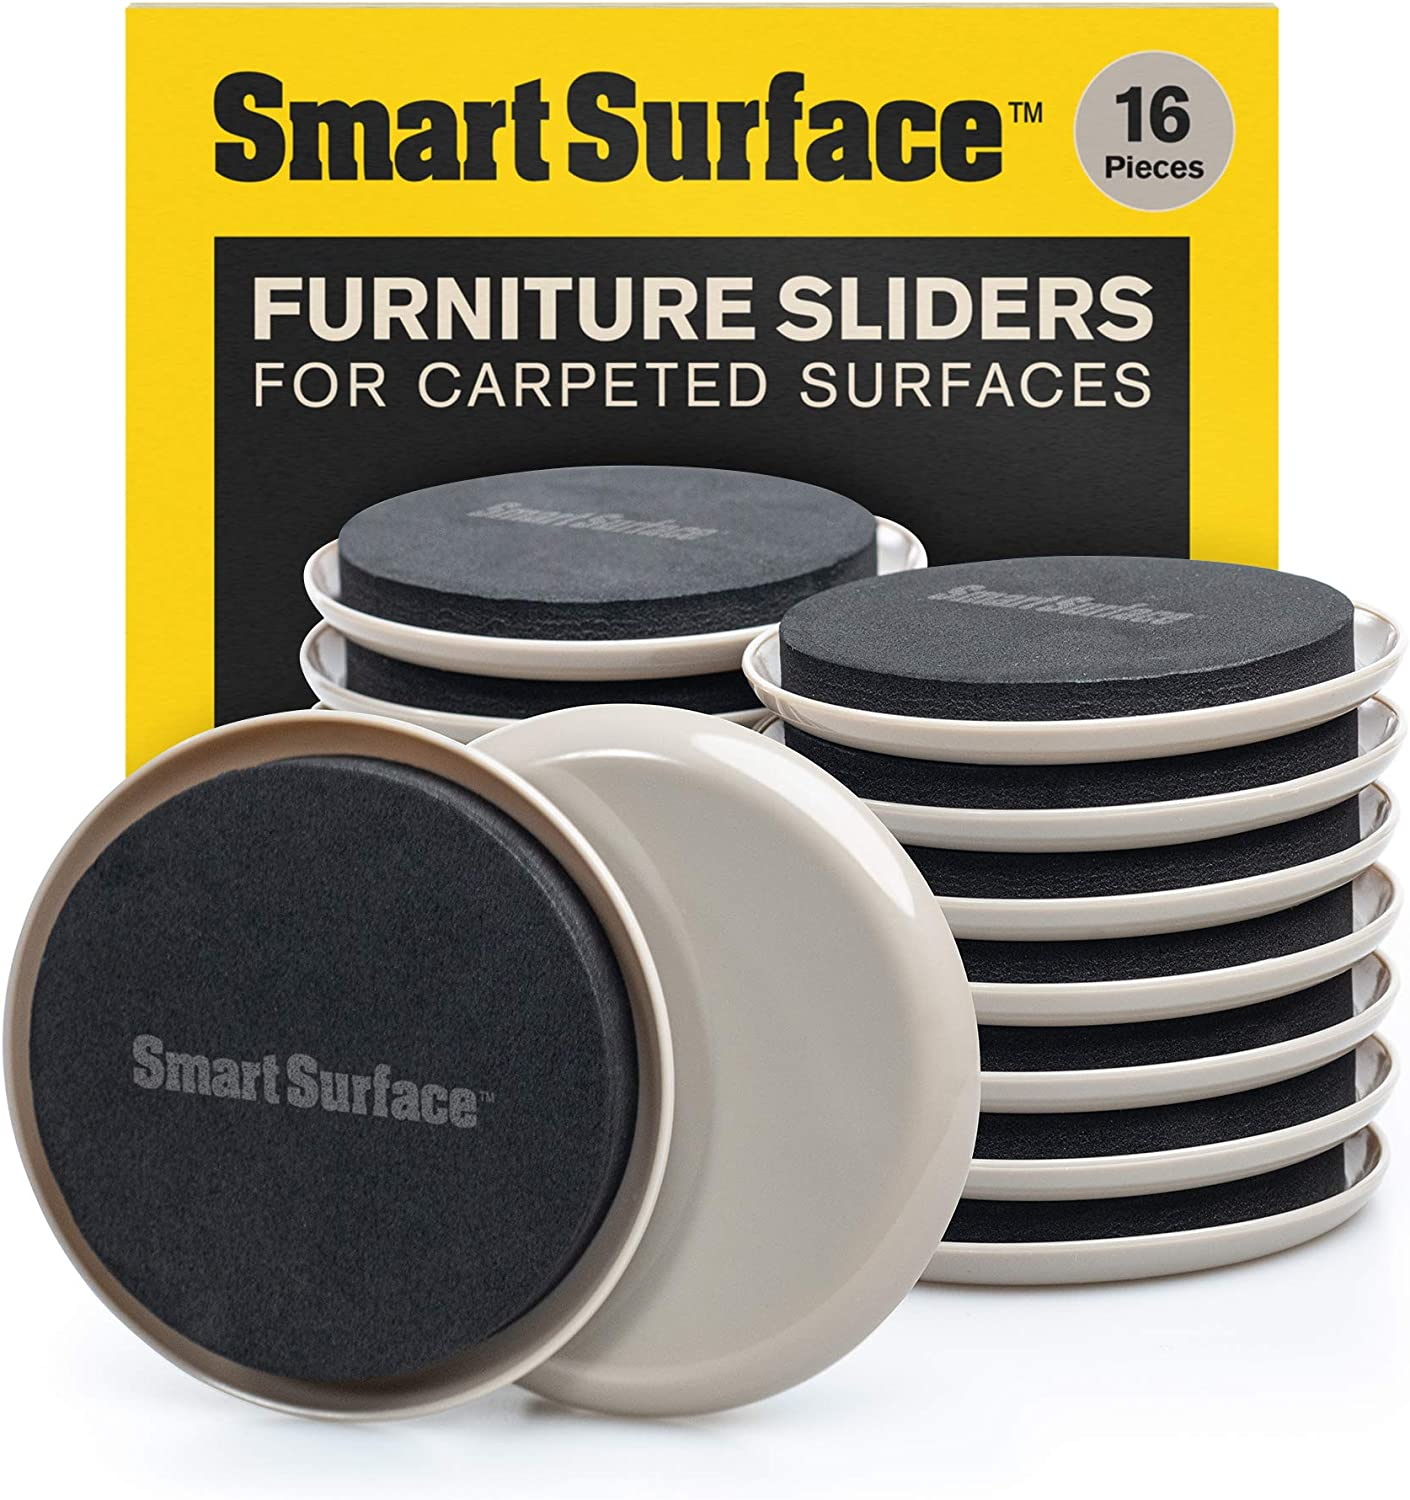 81GGfsB7C7L. AC SL1500 - What Are The Best Furniture Sliders For Hardwood Floors - ChairPicks